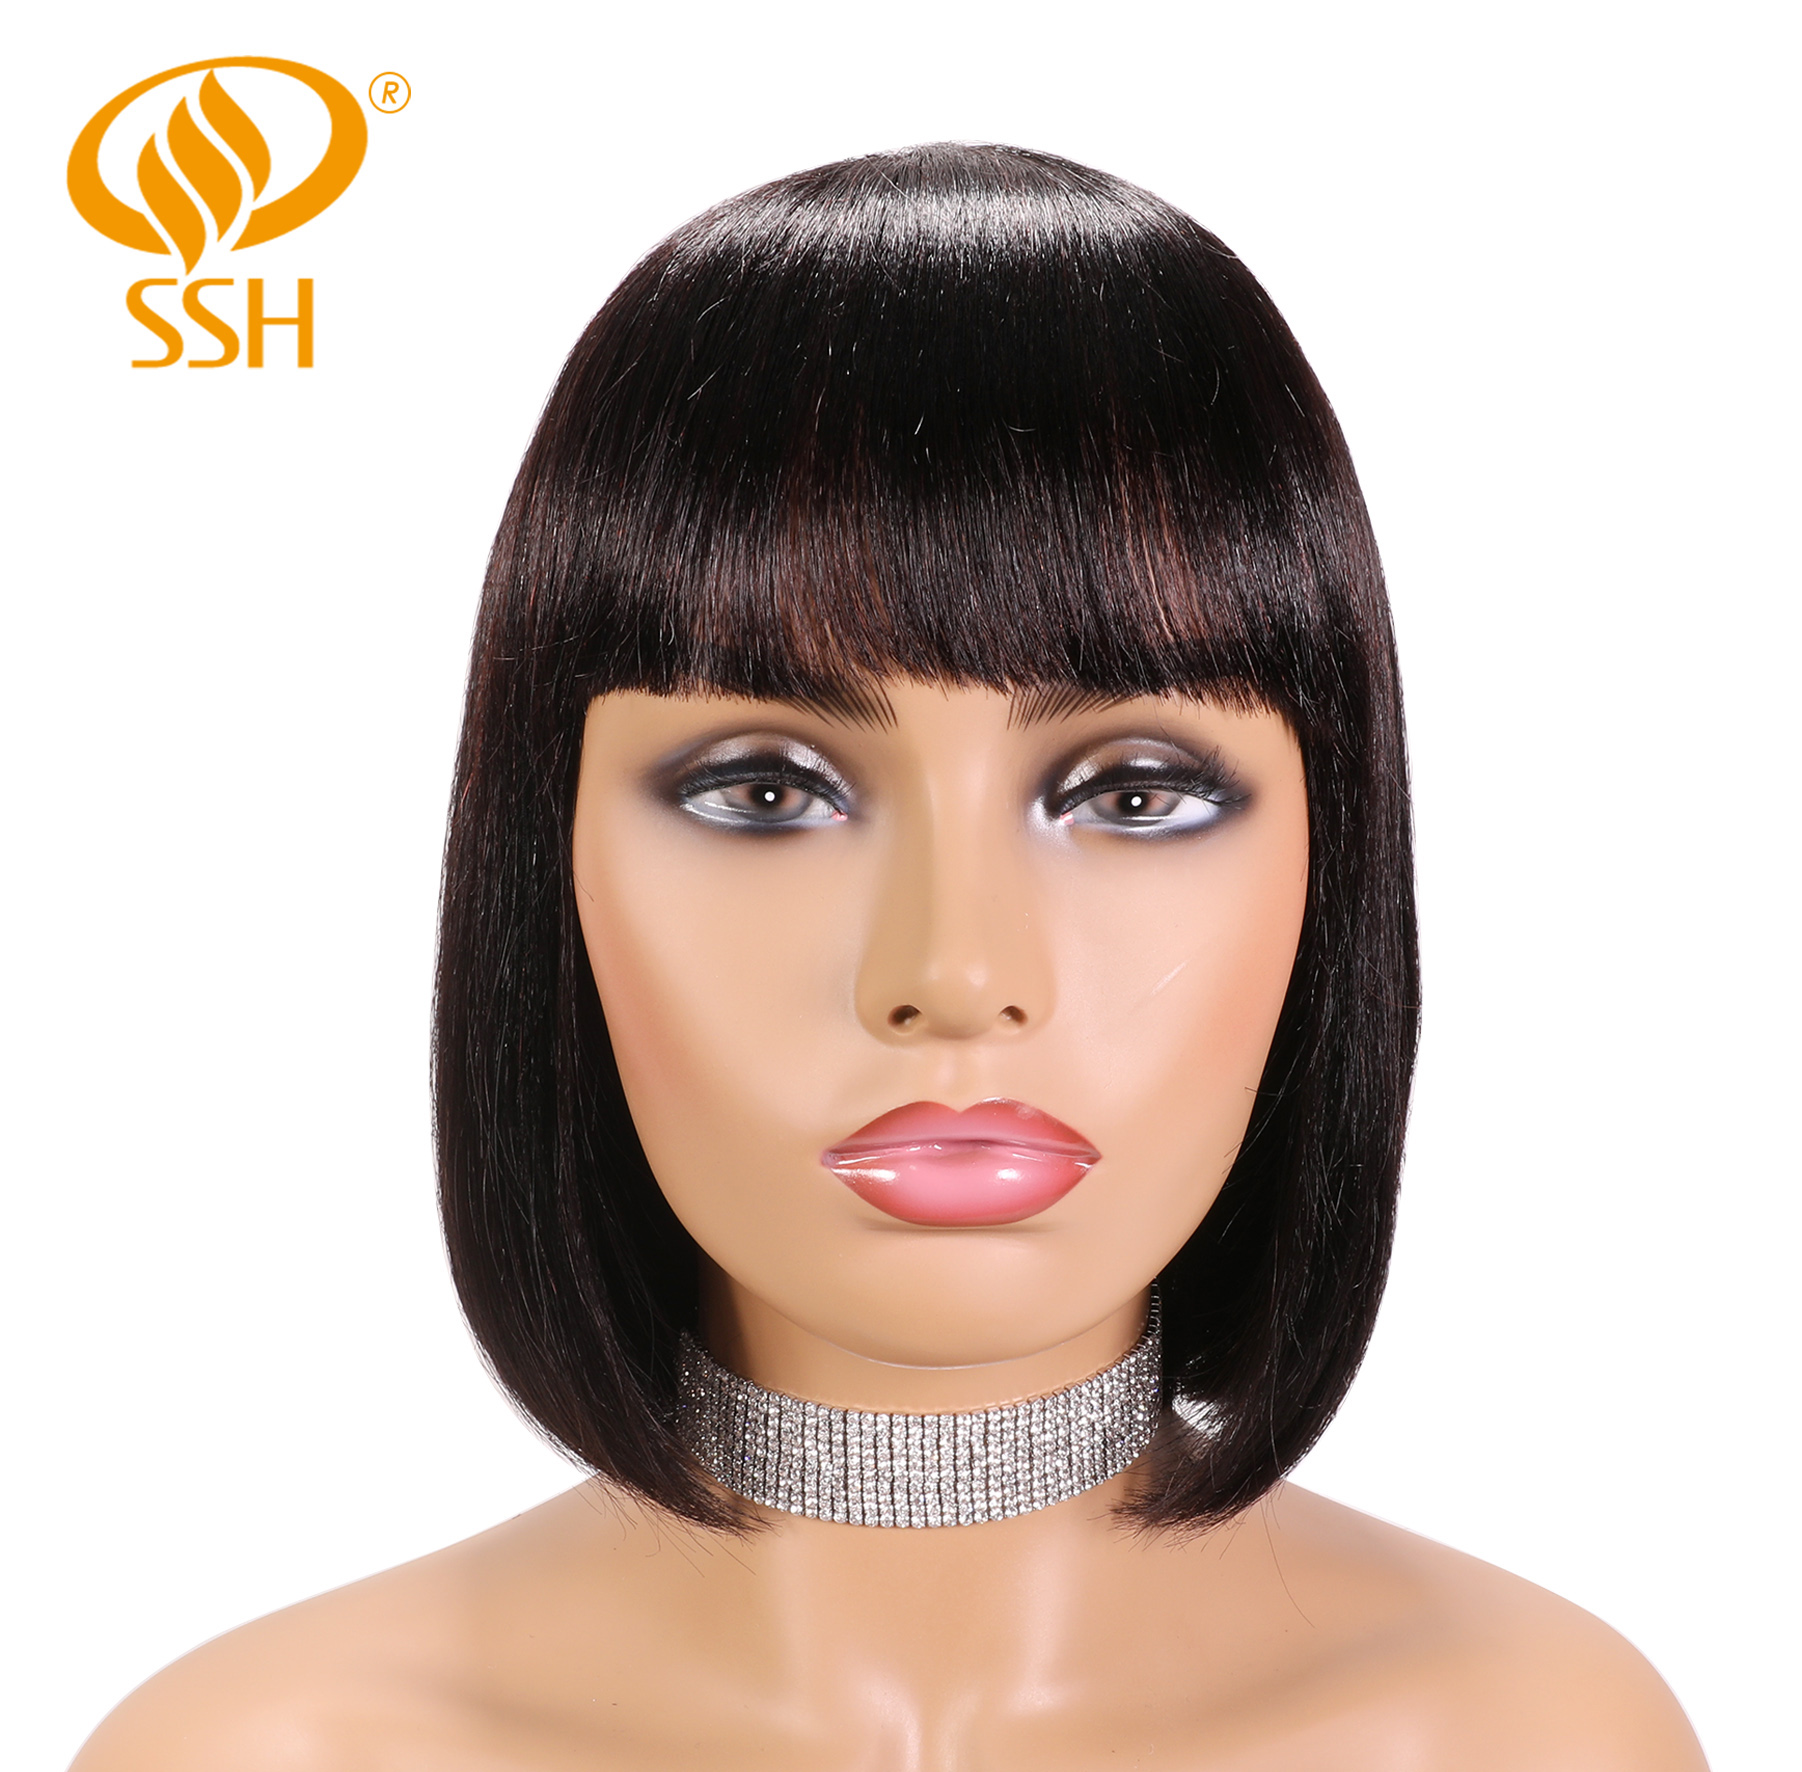 SSH 100% Remy Human Hair Short Bob Wigs For Women Straight Hair Black Bob Wigs With Hair Bangs 10Inch Trendy And Natural Looking